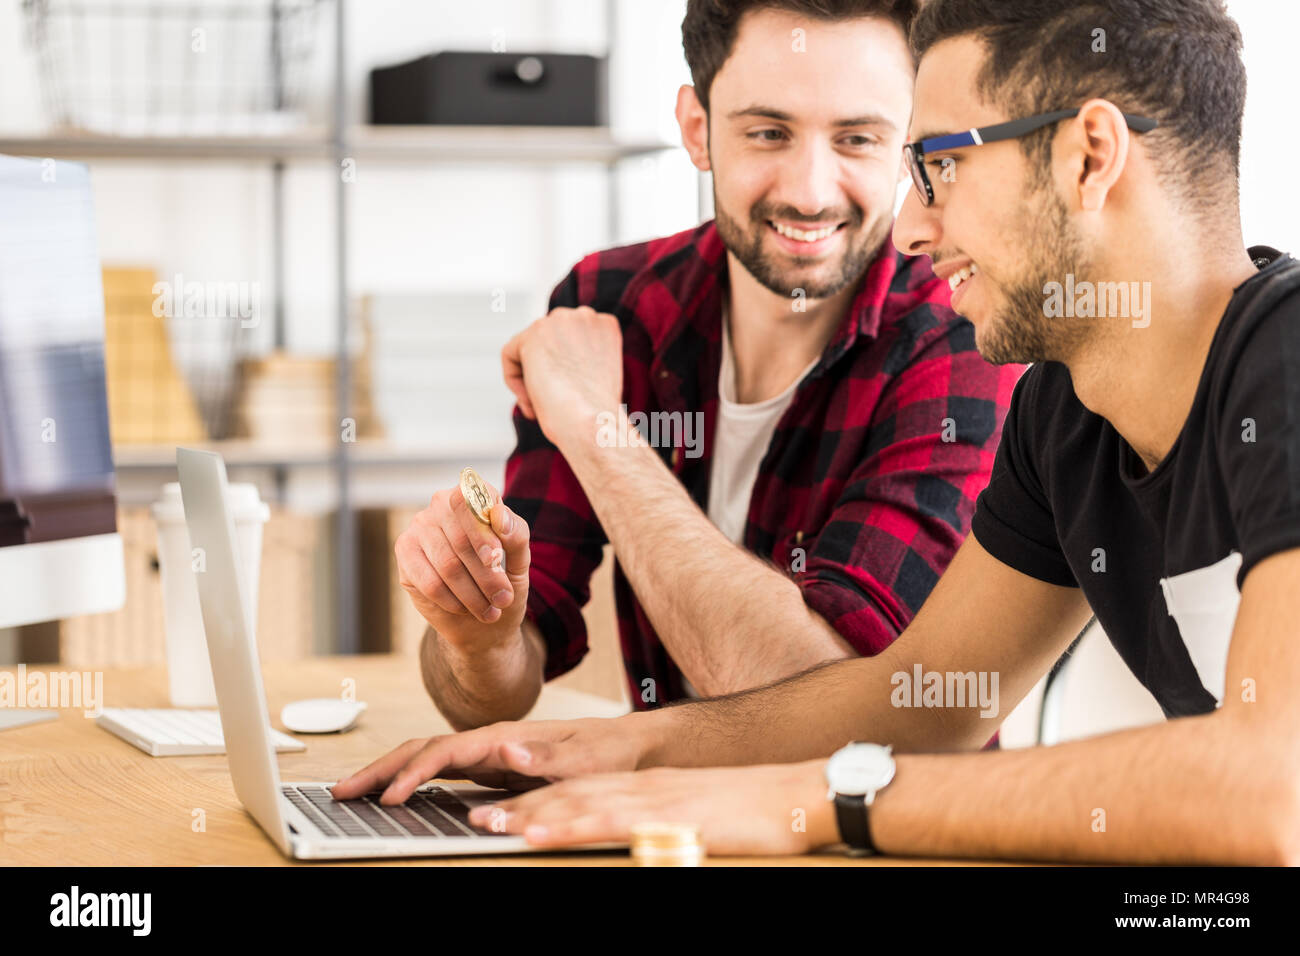 Stockbrokers buying cryptocurrency using laptop - virtual money on the Internet - Stock Image